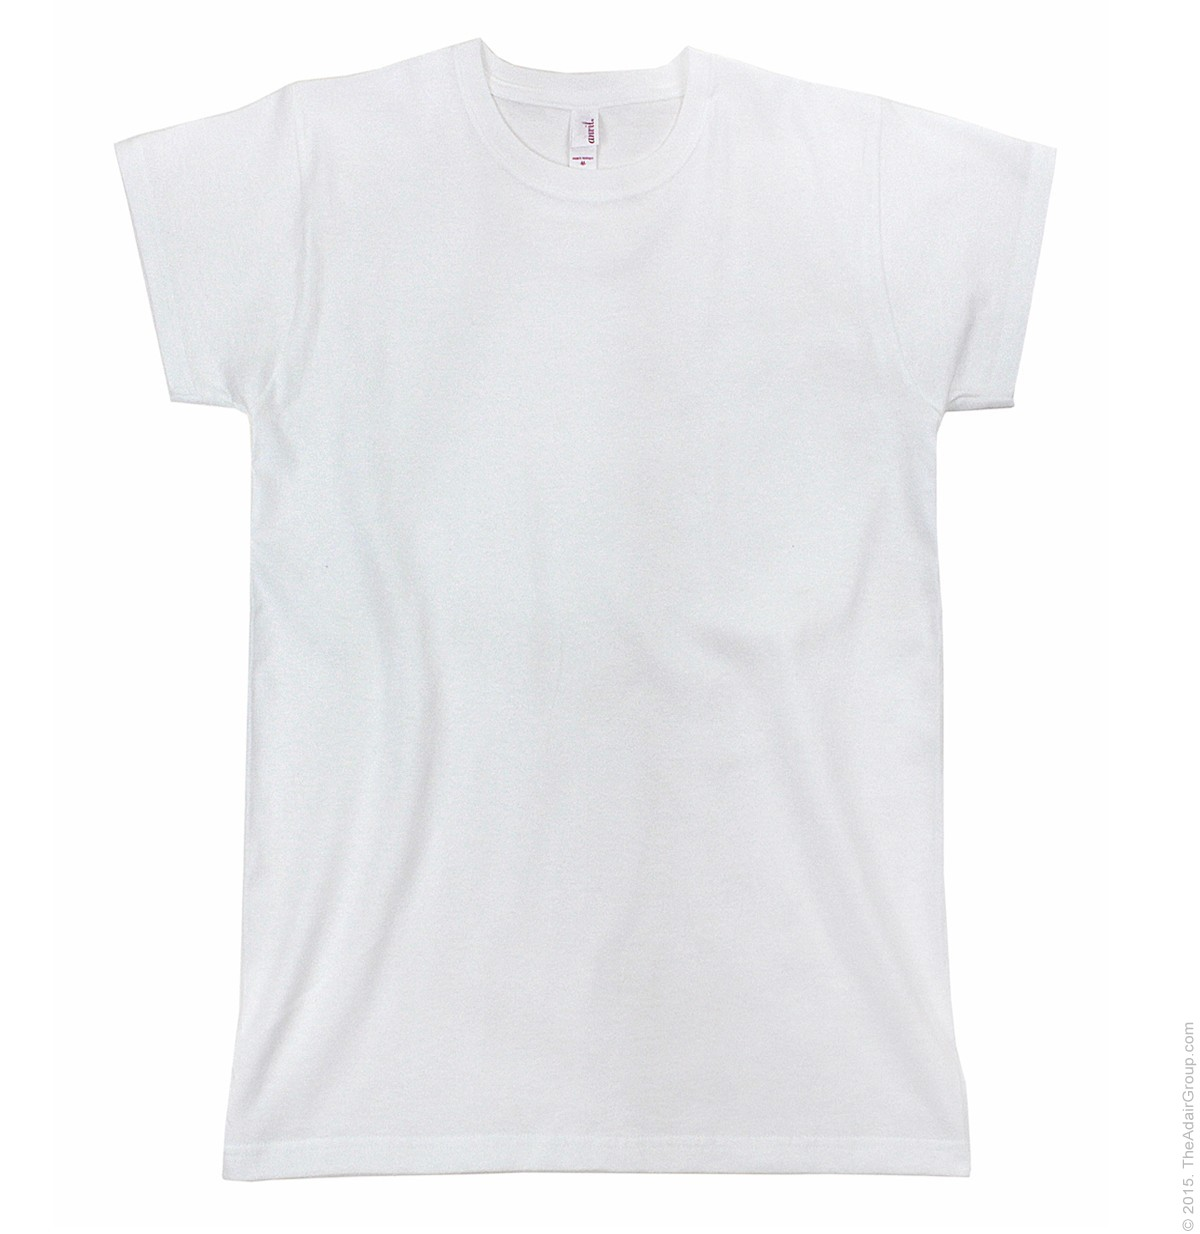 Plain white shirts cheapest t shirt jpg - White Womens Basic T Shirt